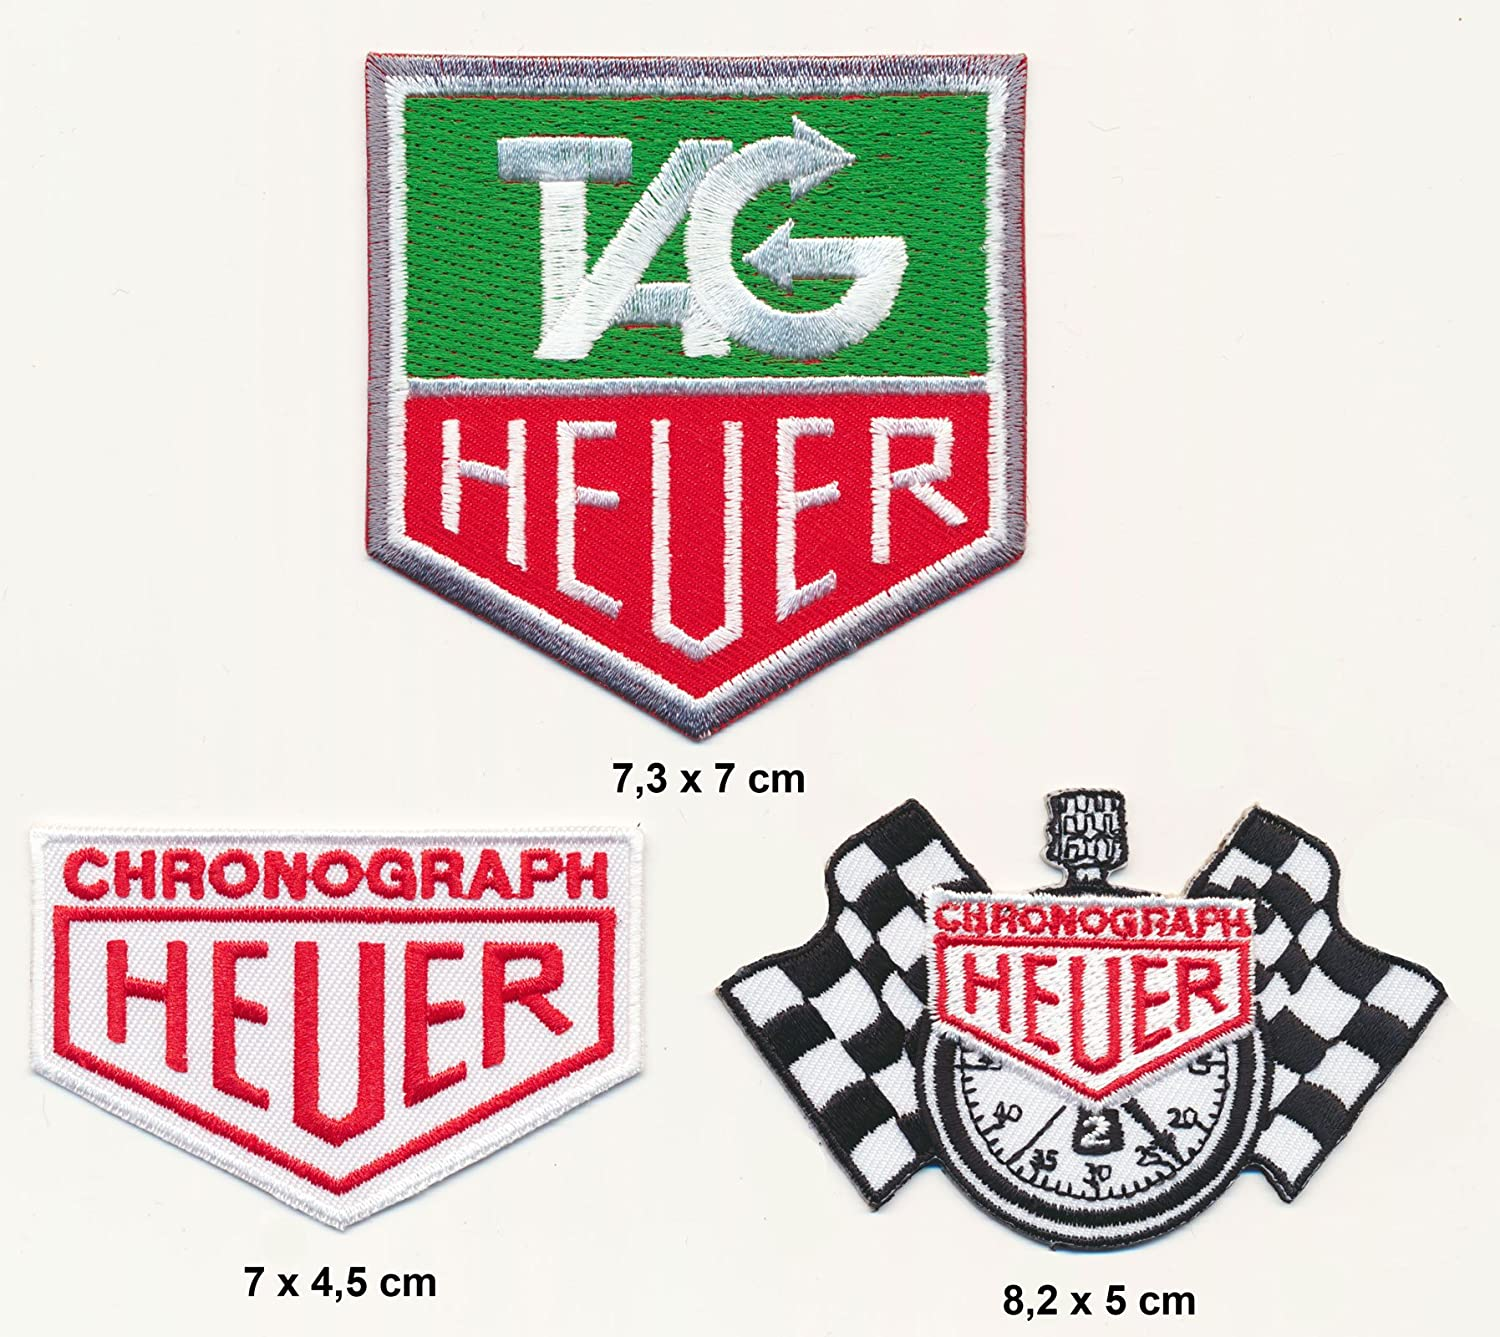 Heuer Chronograph Patch Aufn/äher B/ügelbild Motorsport Racing Team Blue